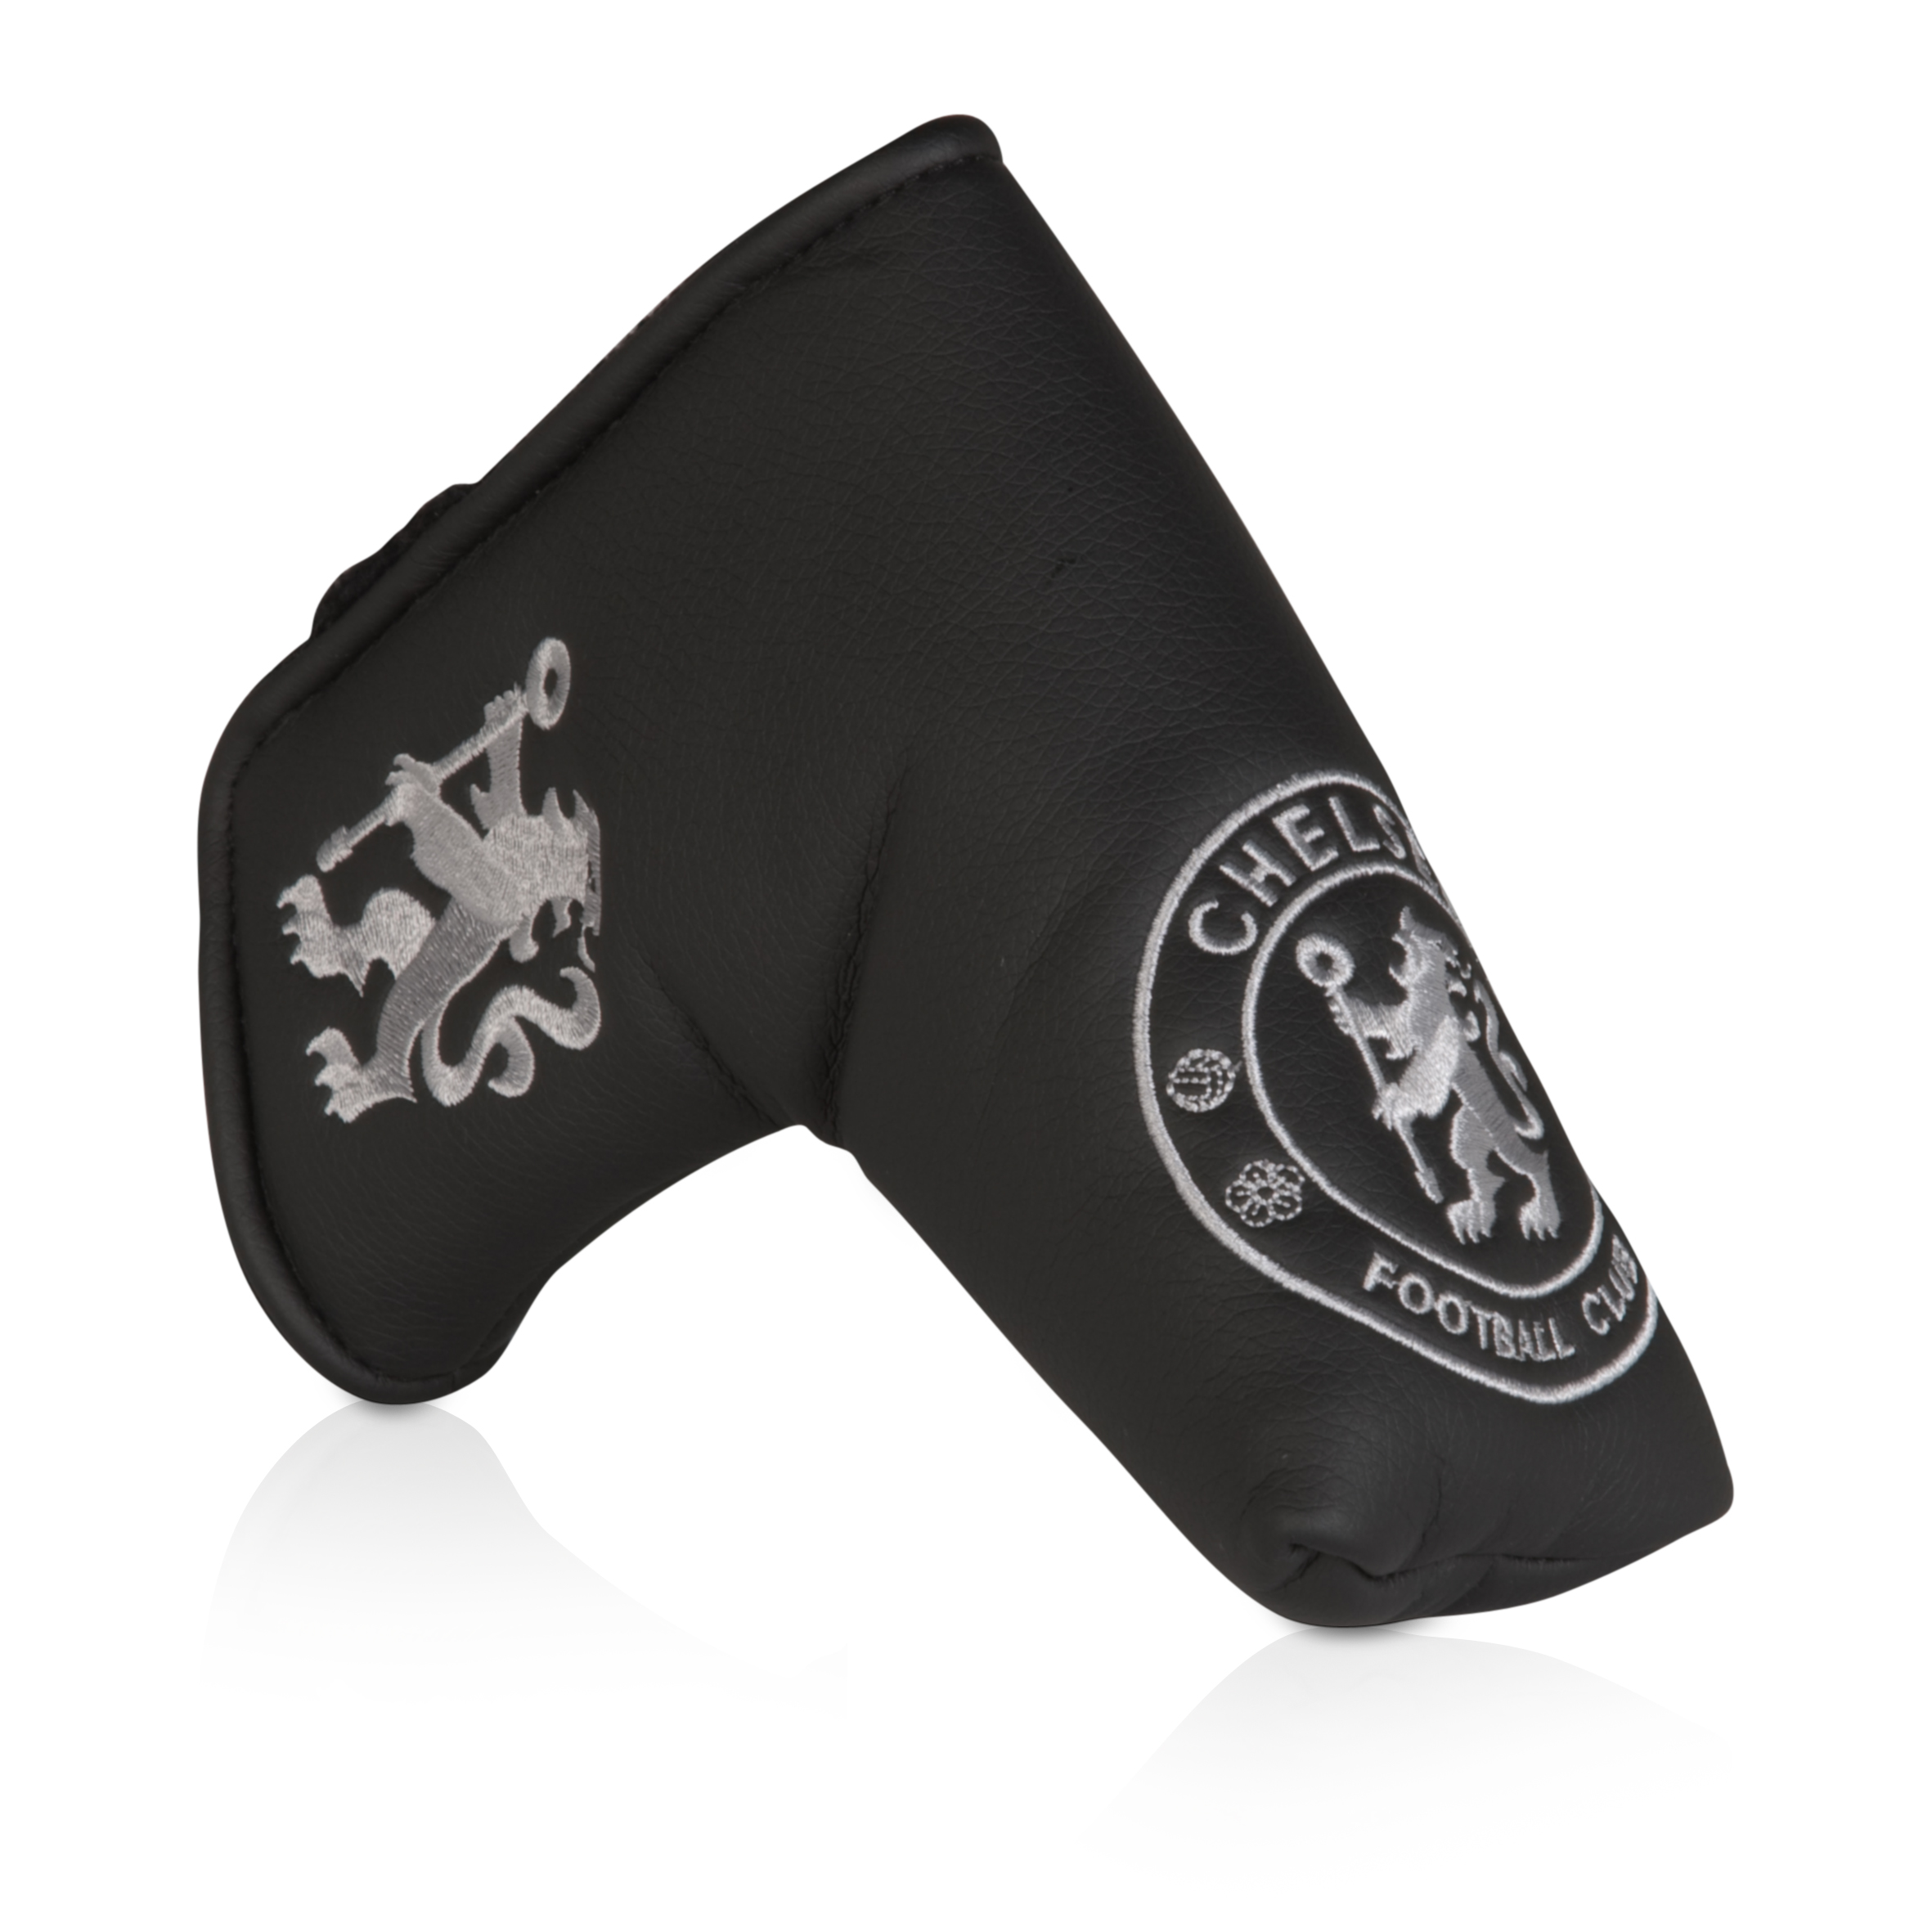 Chelsea Blade Putter Cover - Black/Silver